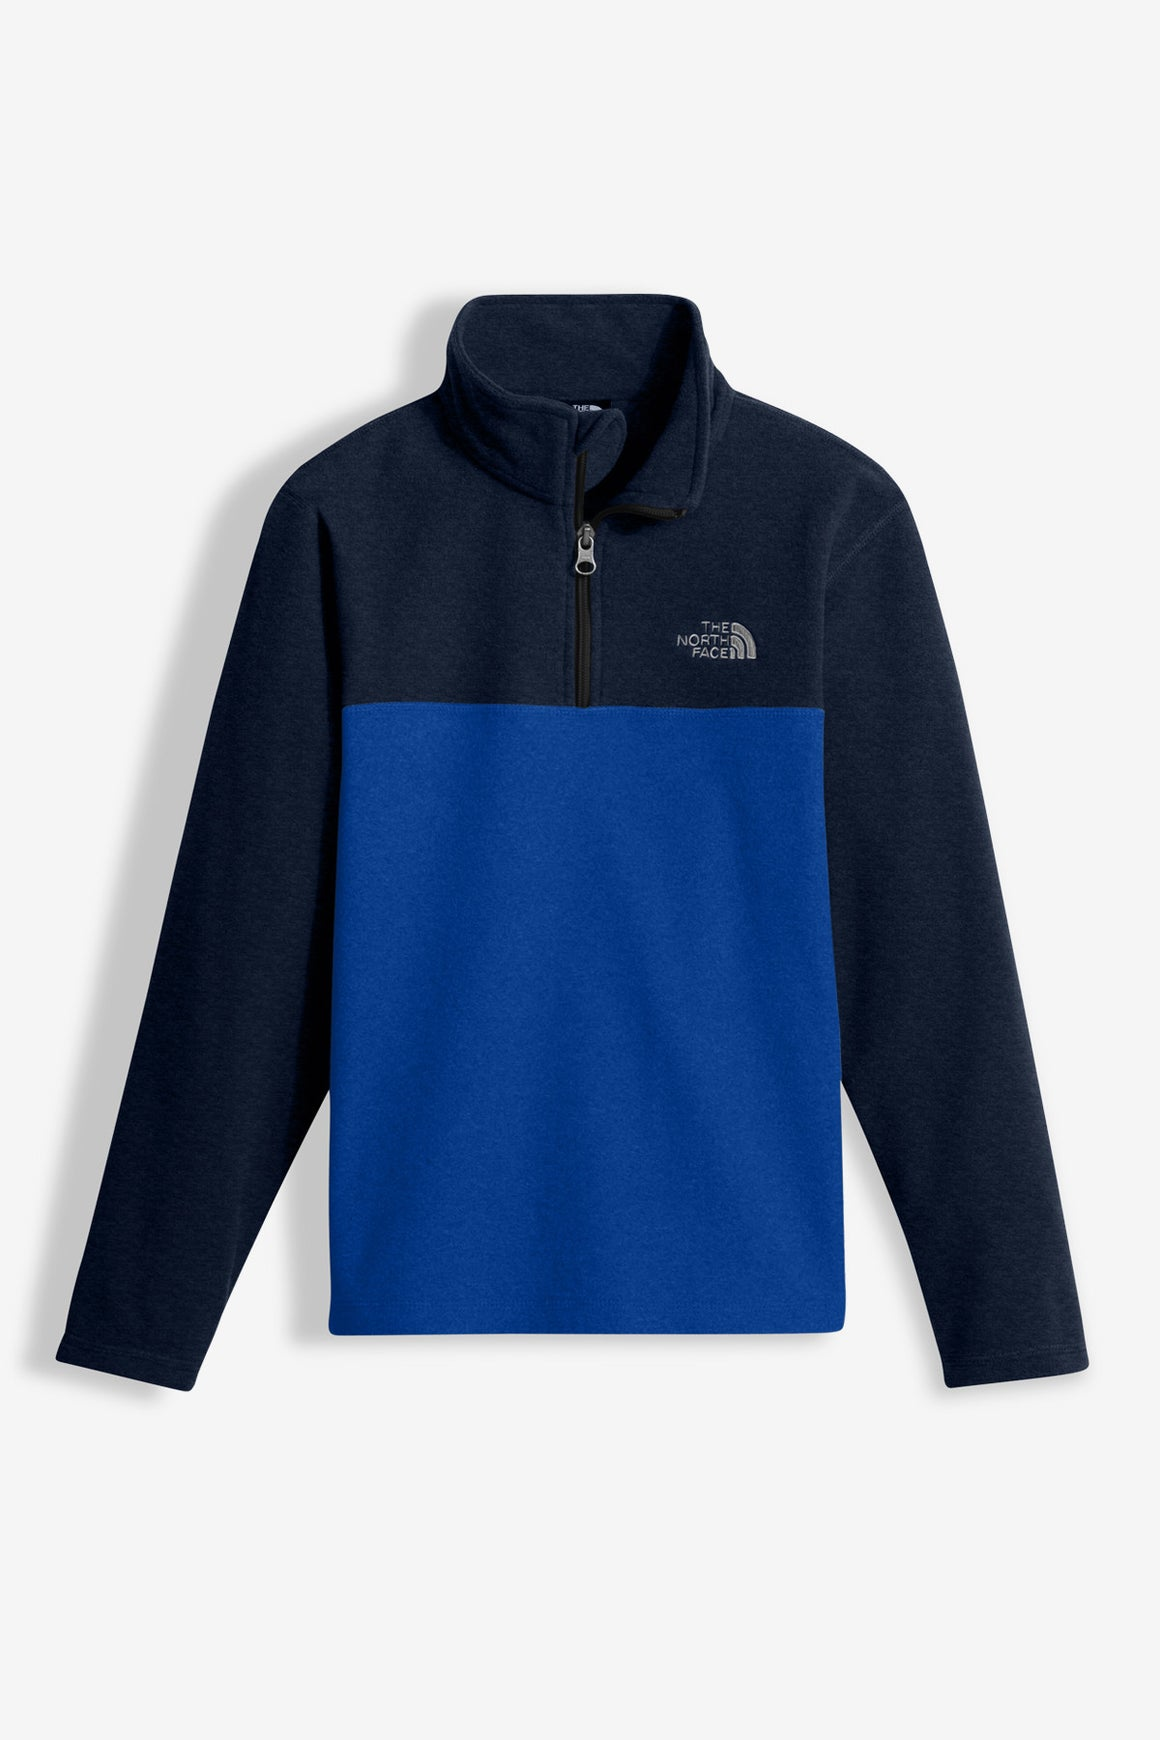 The North Face Boys Glacier 1/4 Zip